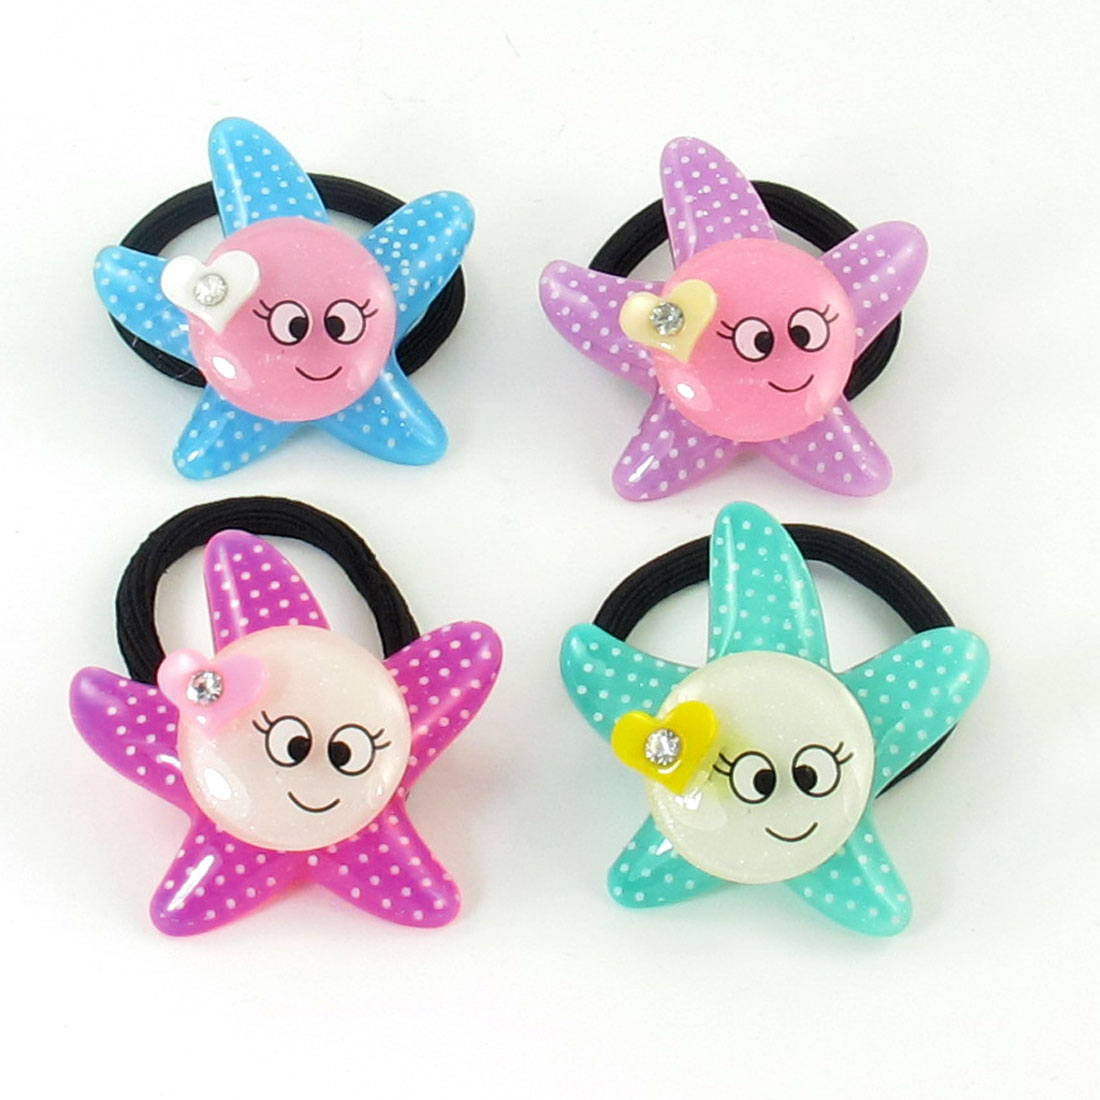 4pcs Assorted Color Smile Face Detail Hair Tie Stretchy Ponytail Holder for Girls